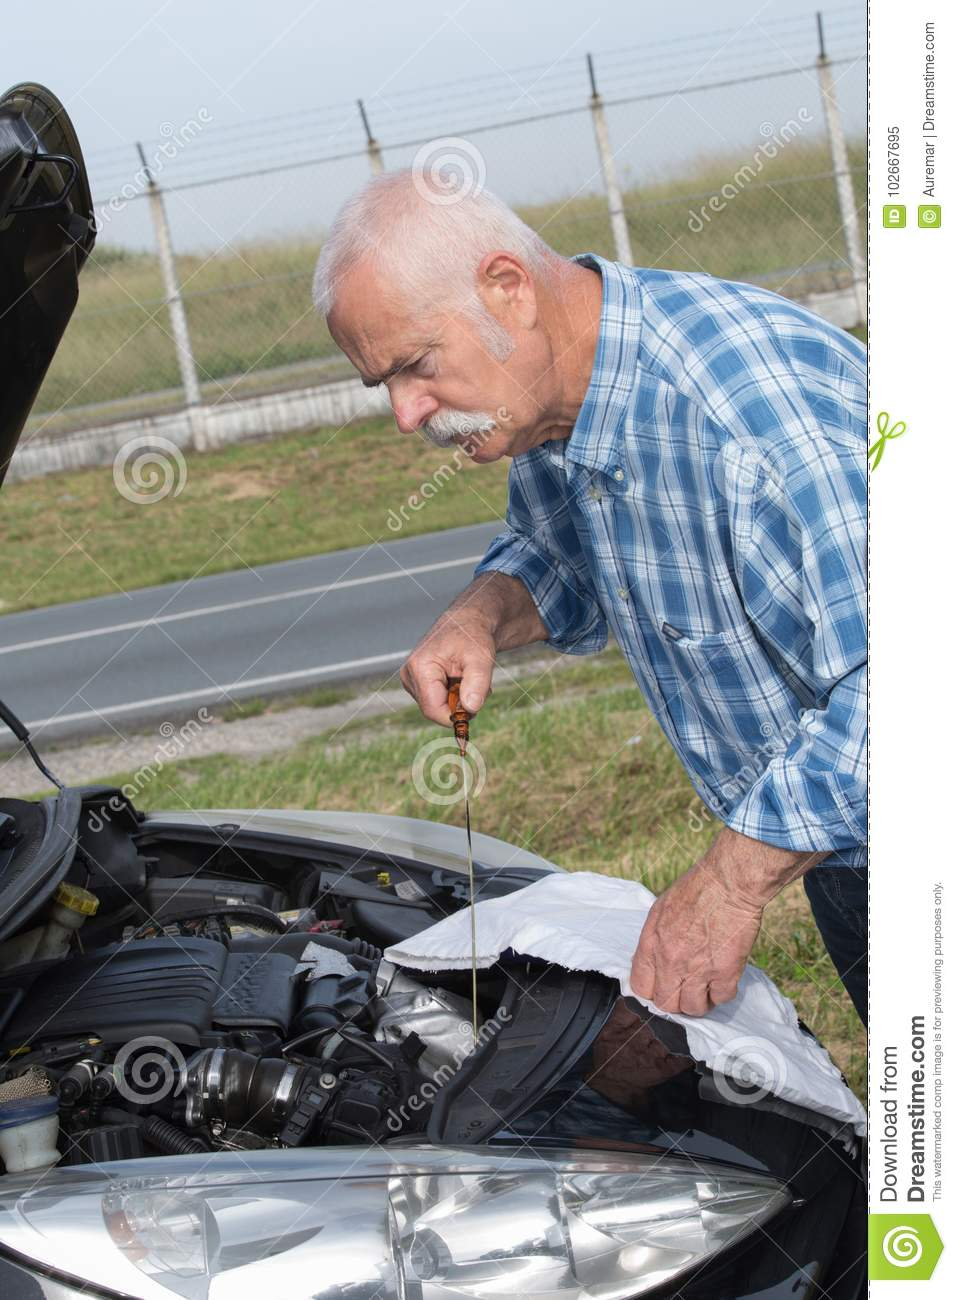 Older man checking levels and servicing car